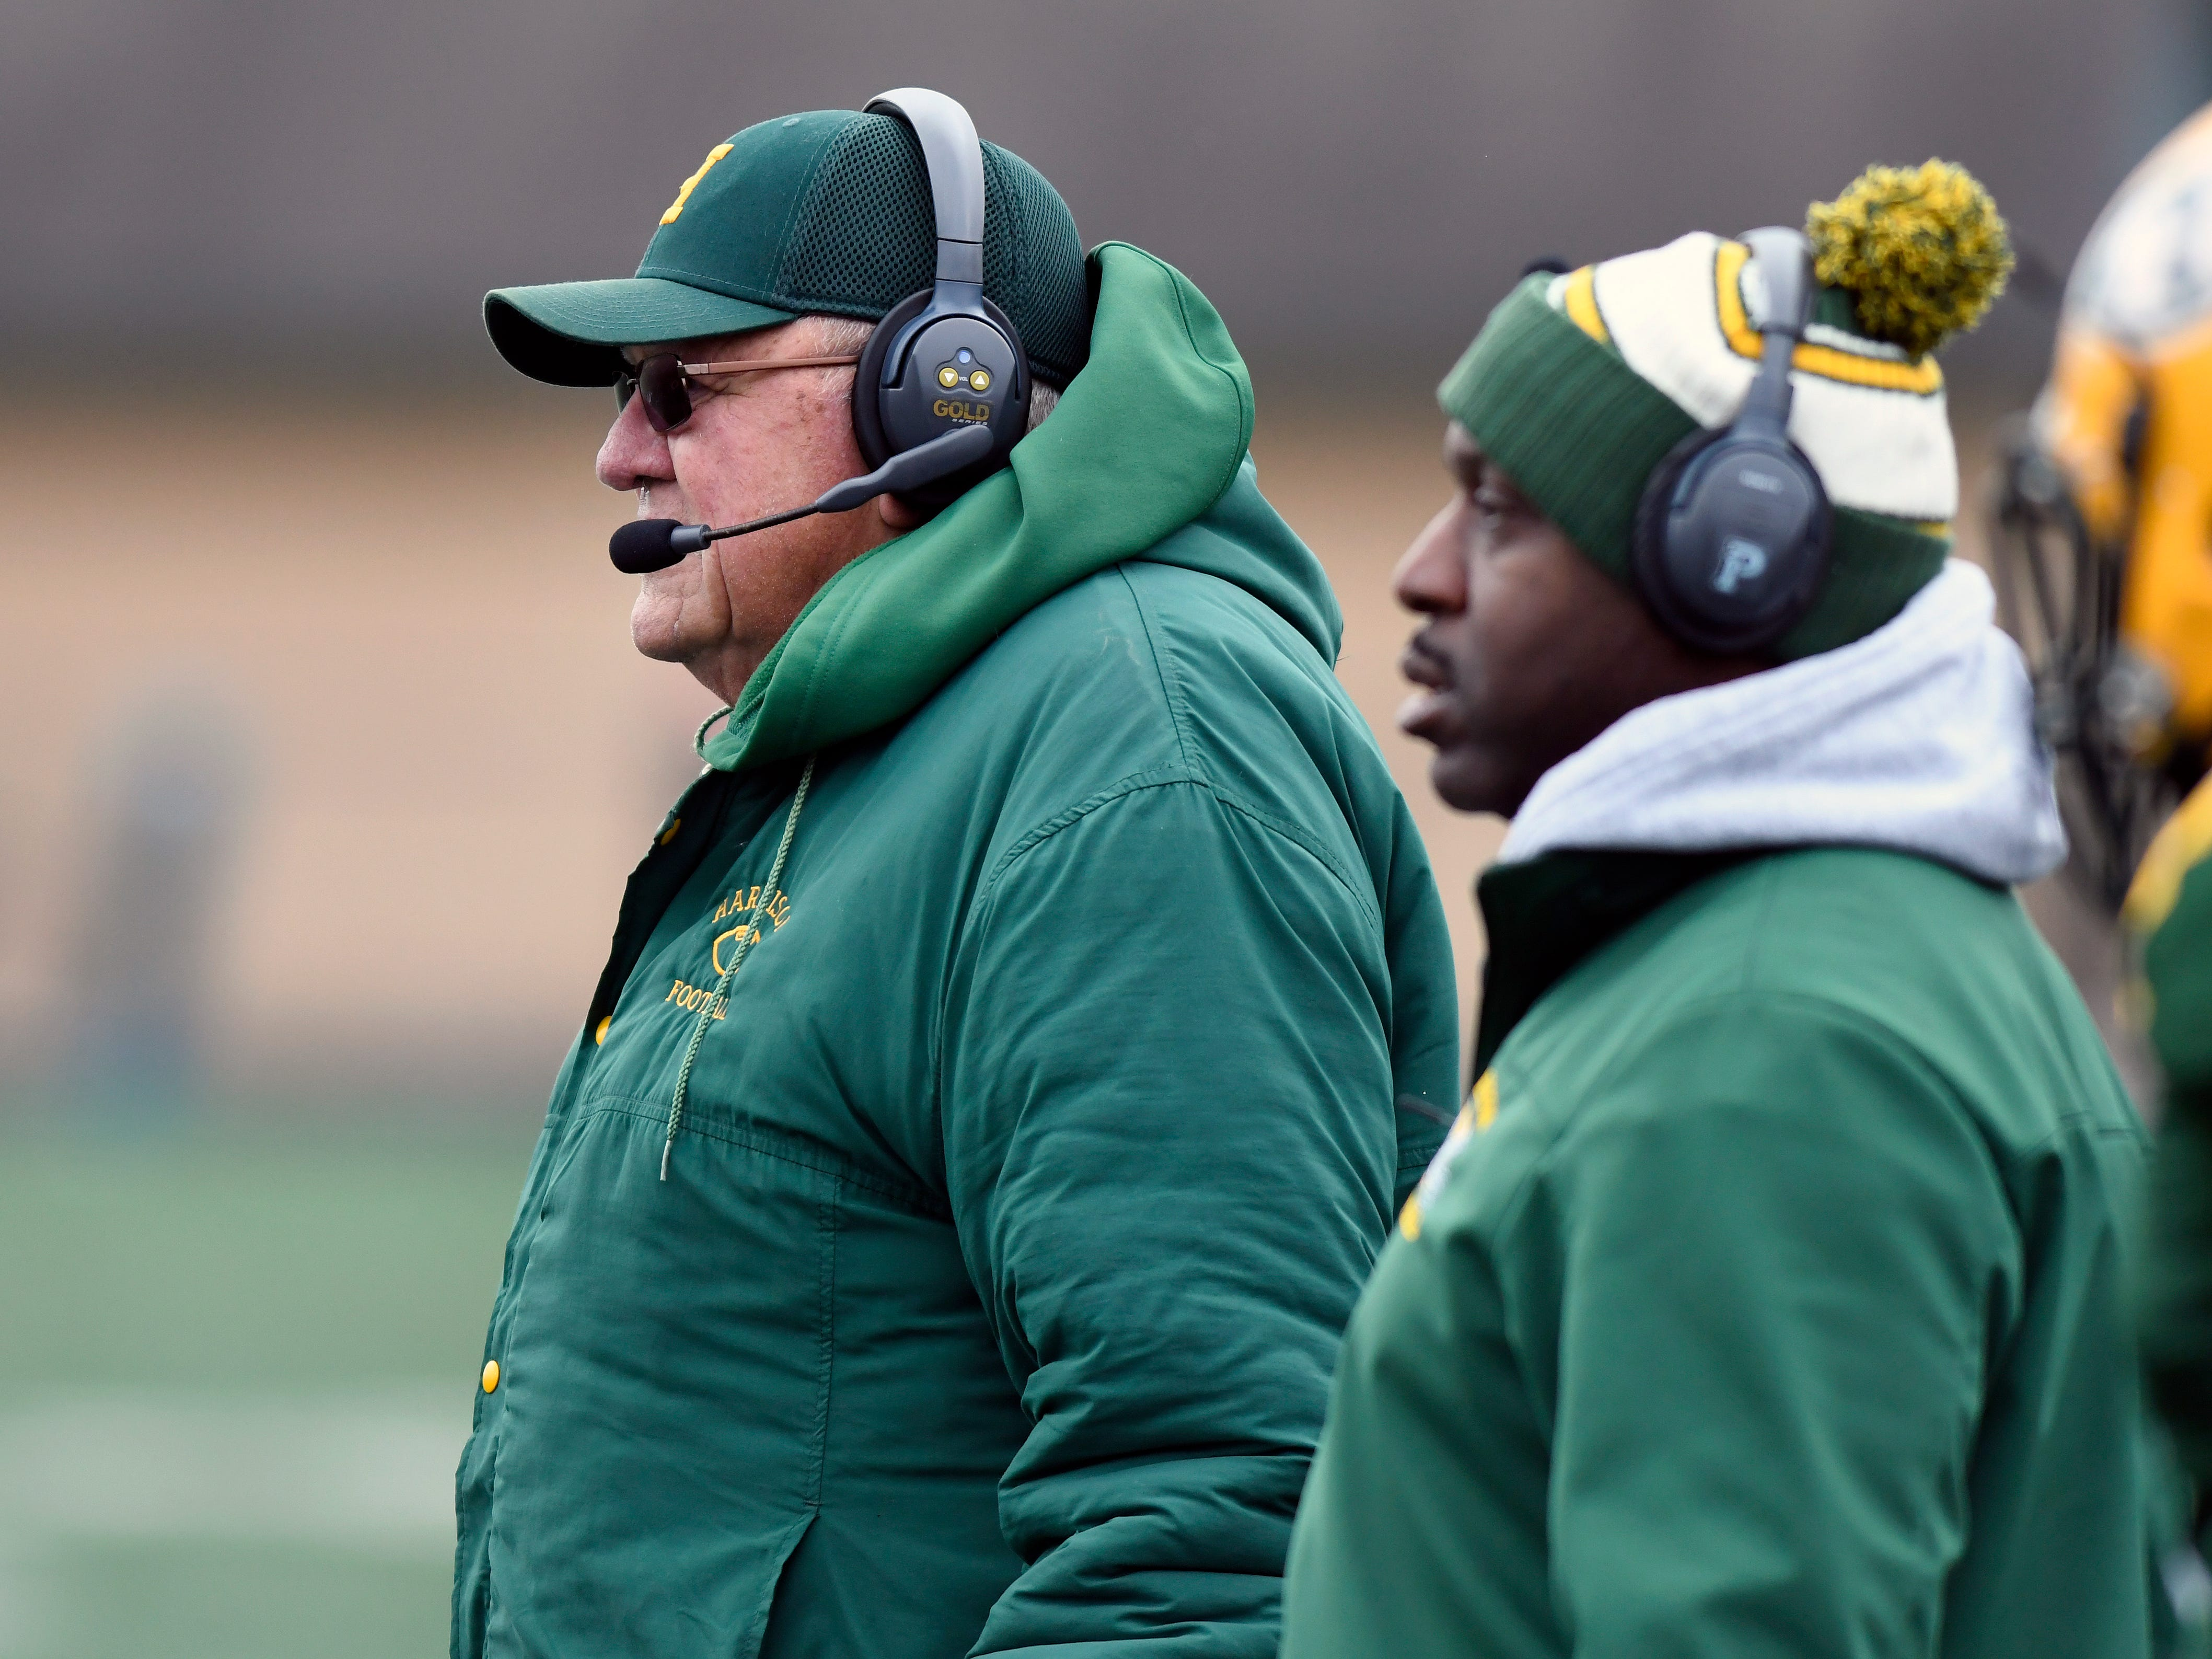 Farmington Hills Harrison football head coach John Herrington, left, watches his team play against Chelsea during the first quarter, Saturday in Farmington Hills. It would be the final game for the storied coach and his high school.